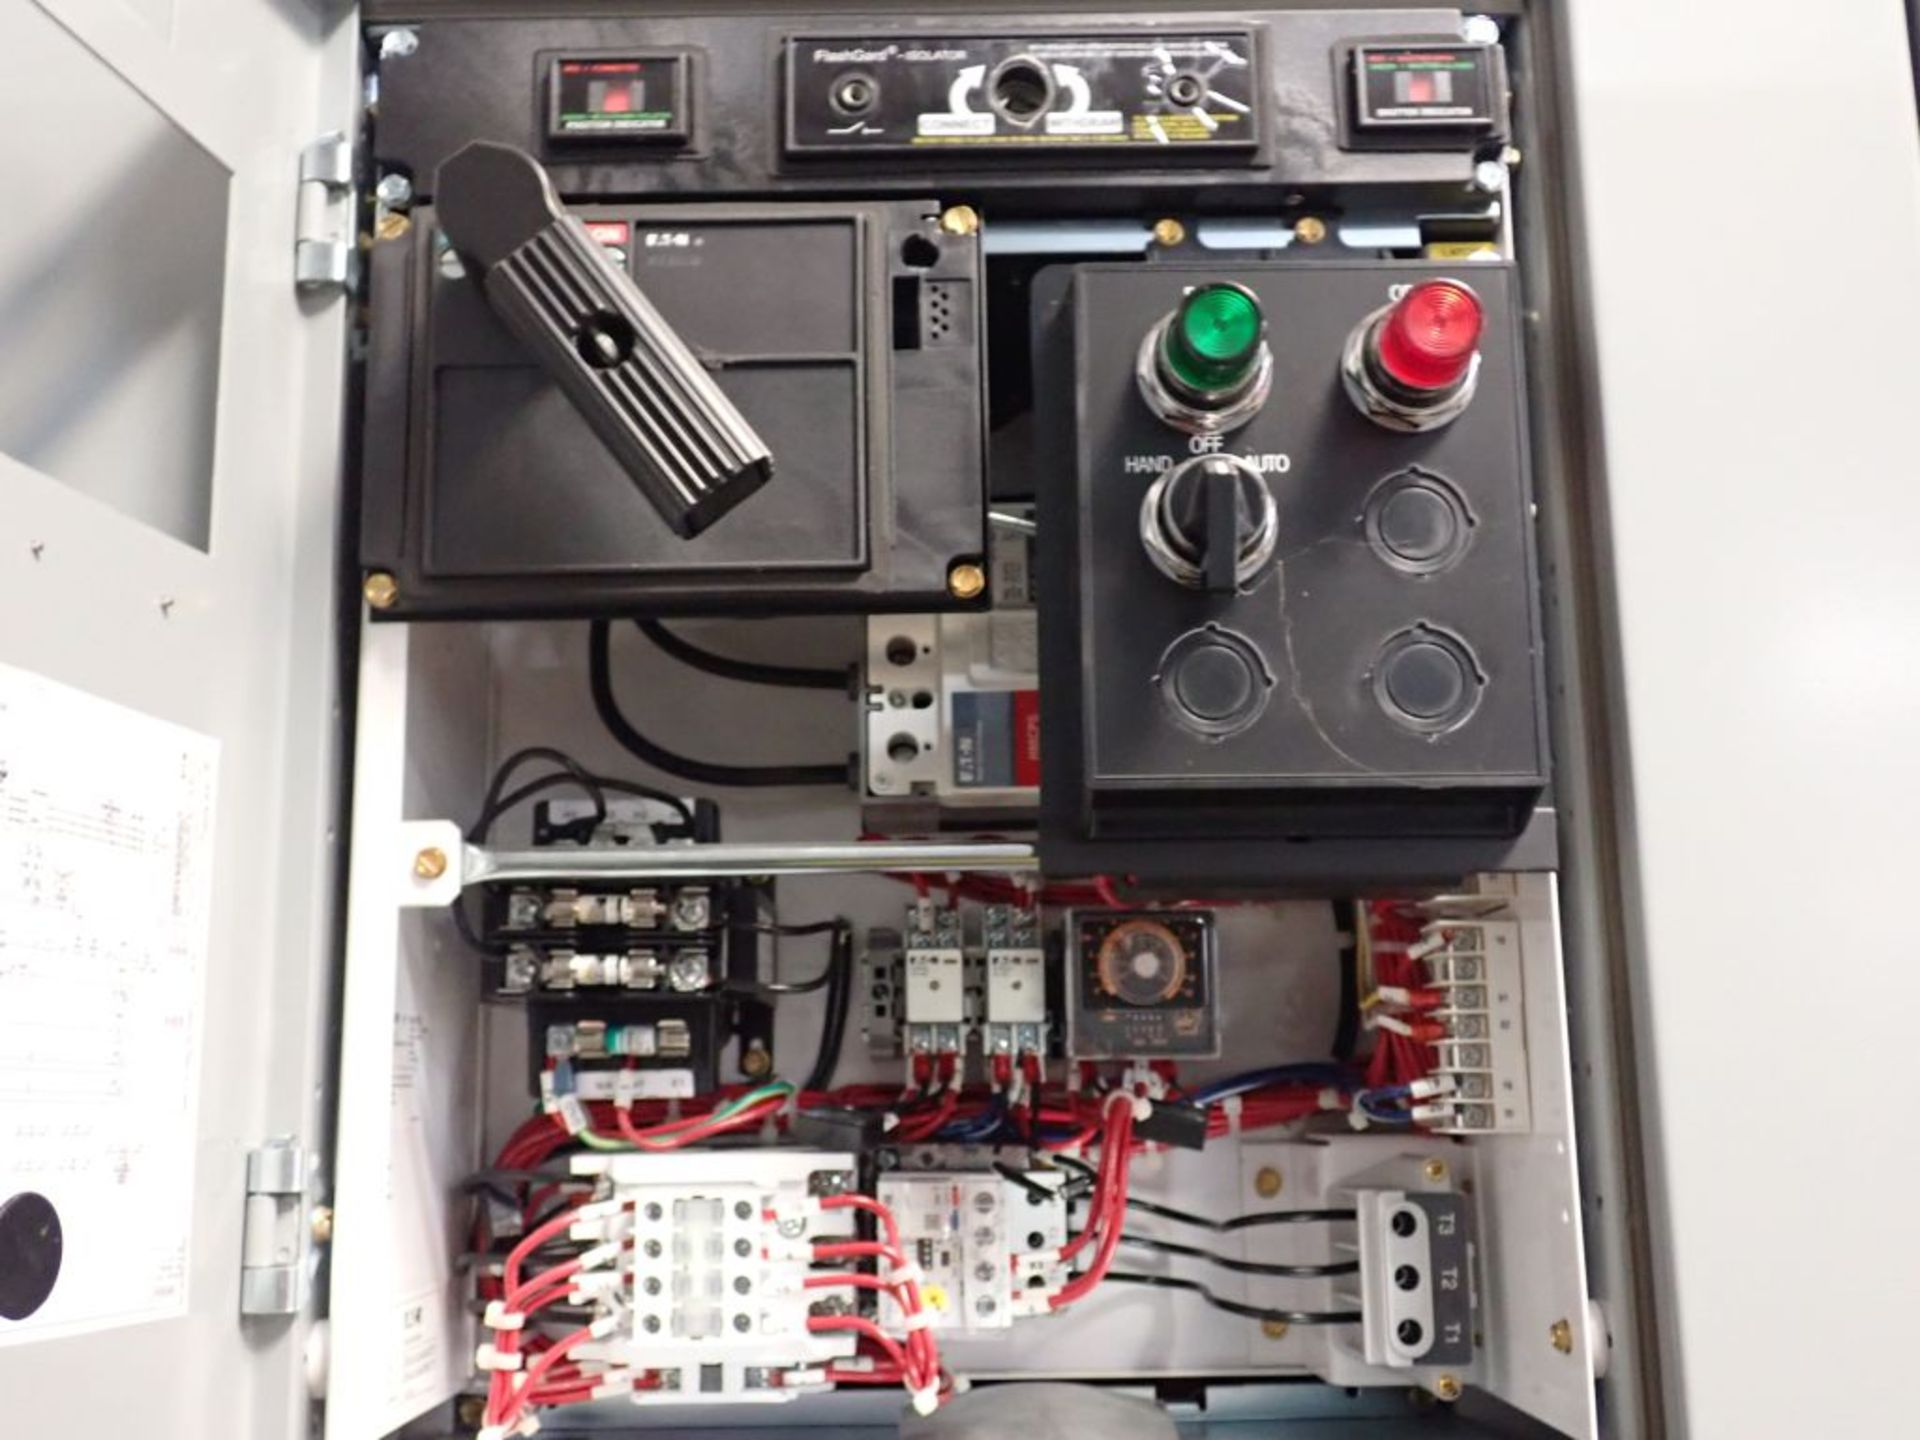 Eaton Freedom 2100 Series Motor Control Center | (11) F206-30A-10HP; (5) F206-15A-10HP; (1) SVX900- - Image 26 of 102